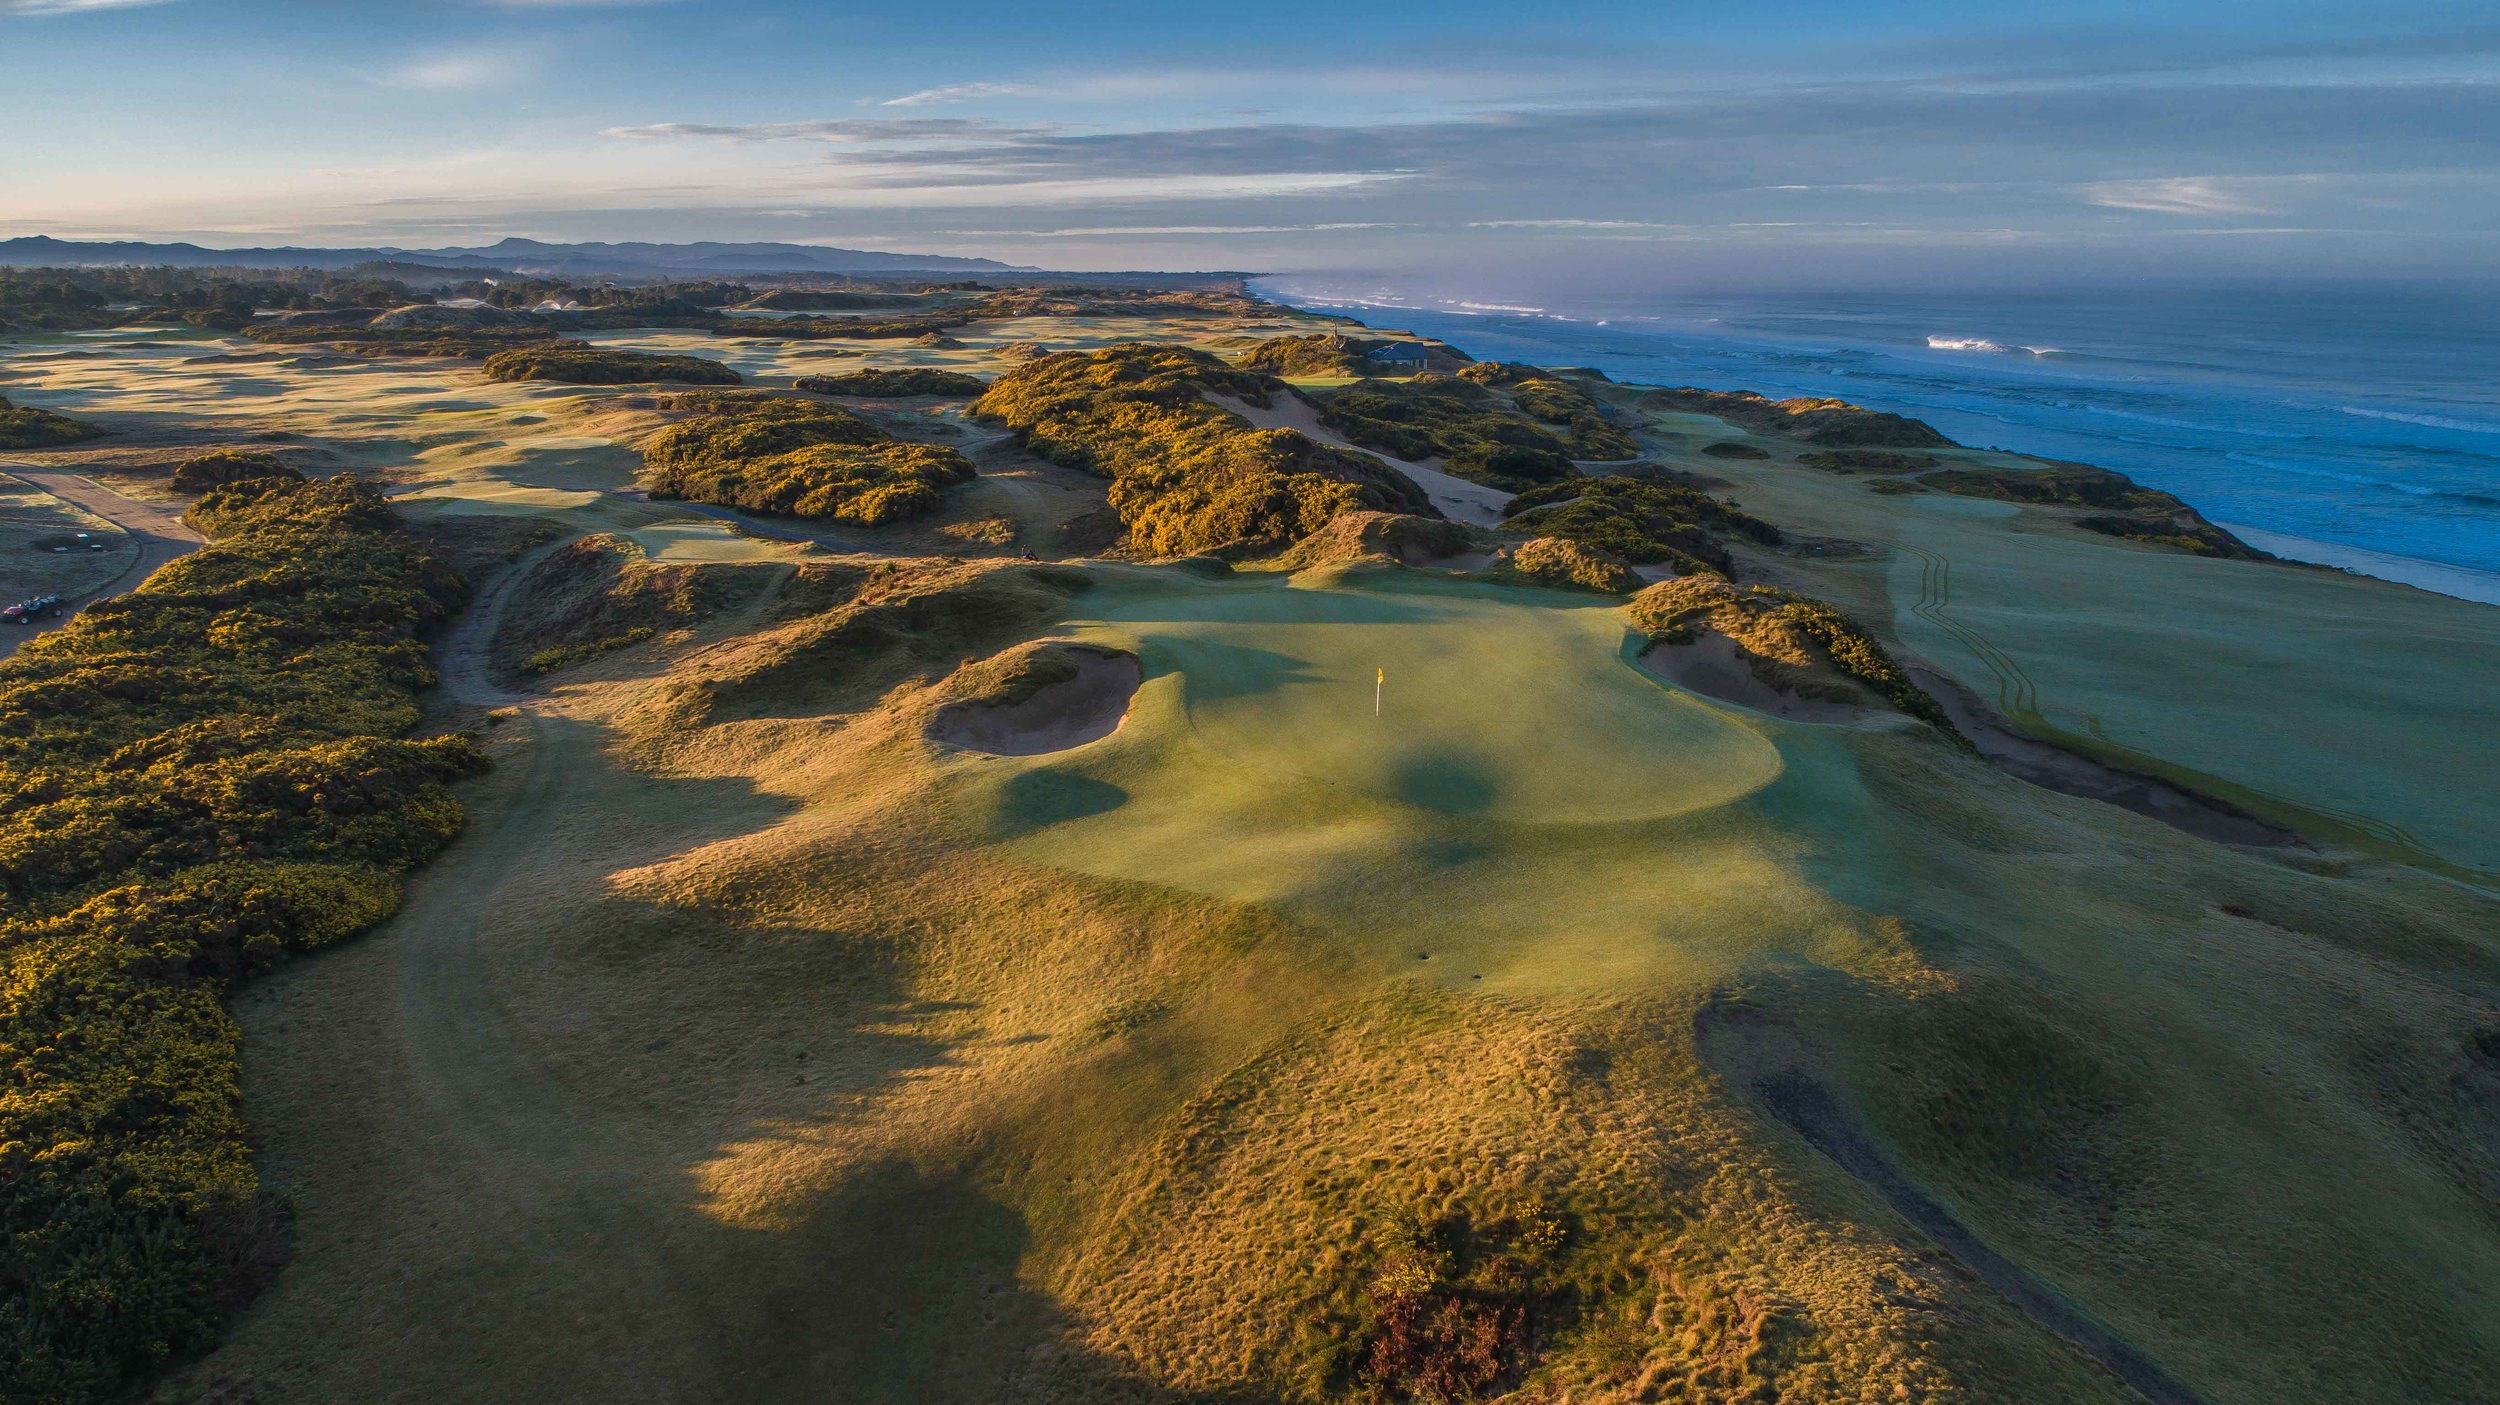 Pacific Dunes at Bandon Dunes Golf Resort